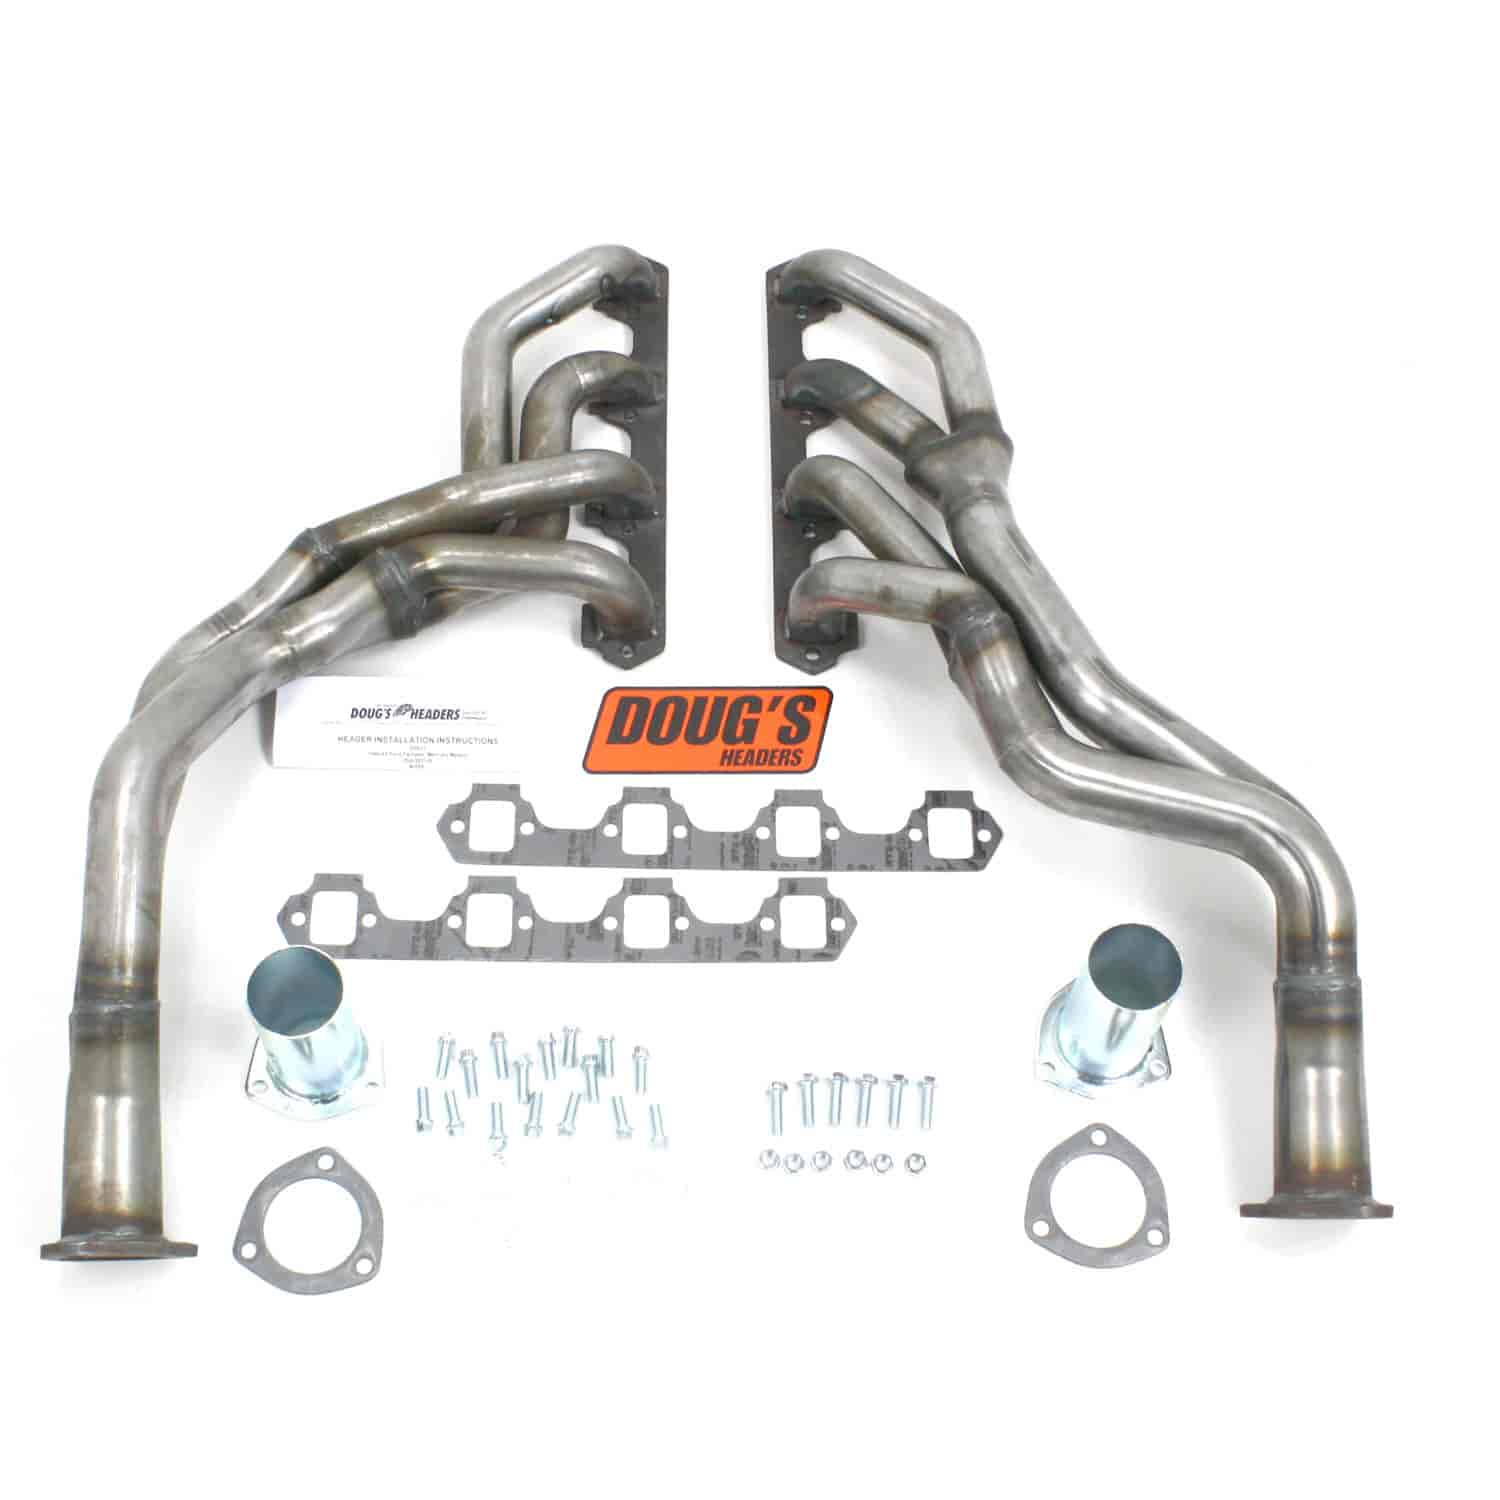 Doug's Headers D662Y-R